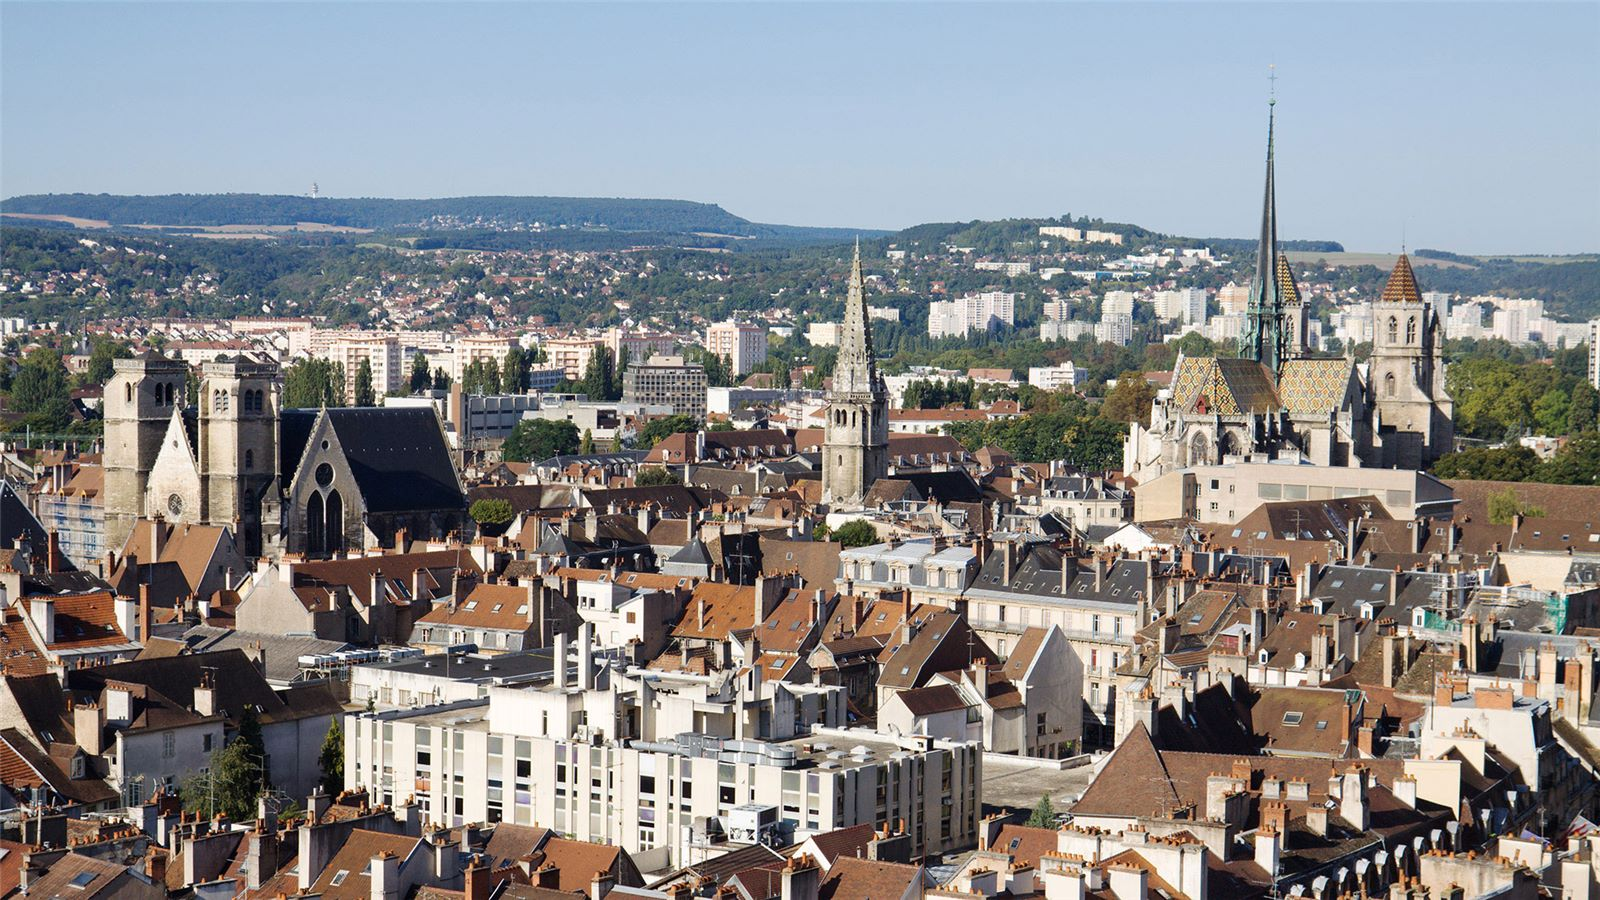 City of Dijon